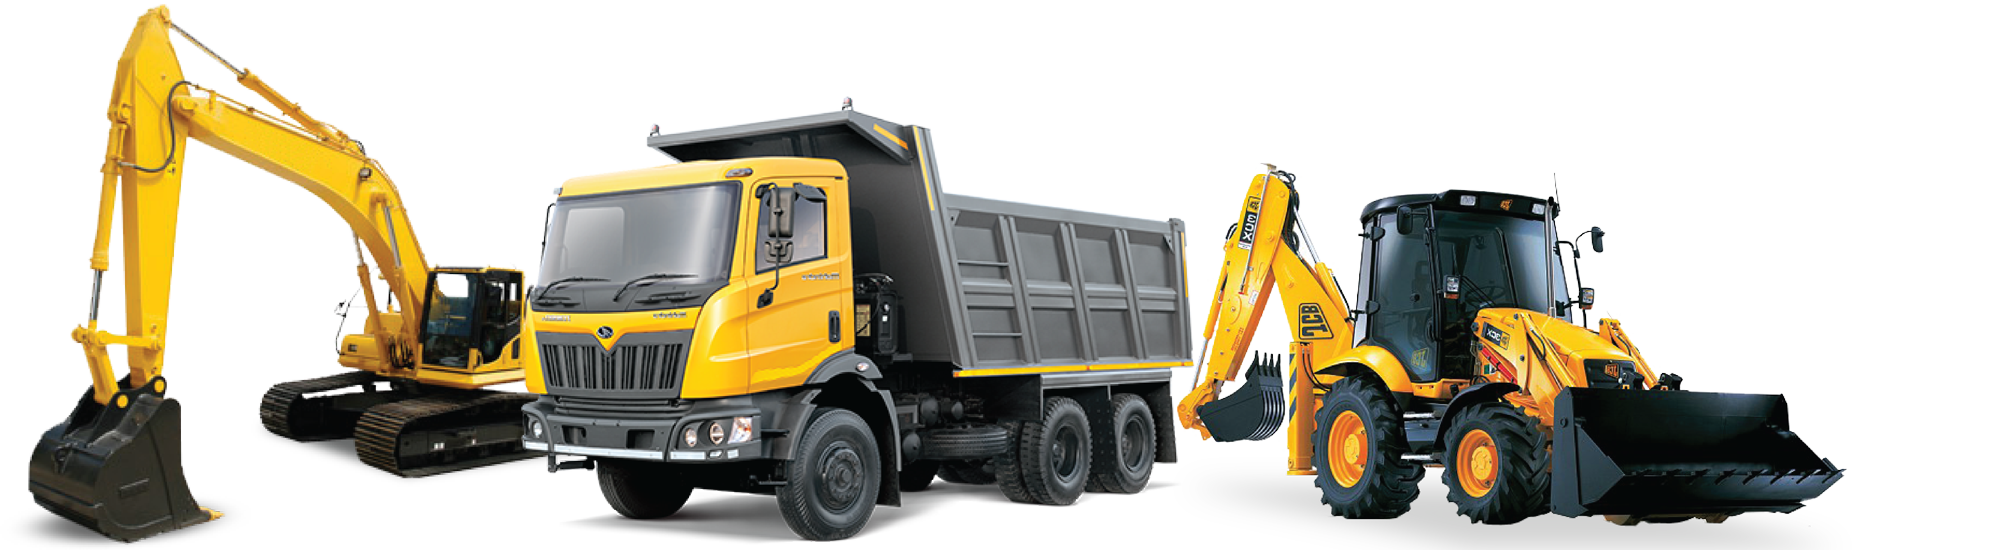 Heavy-machinery-industrial-construction-equipment-leasing - Vaell